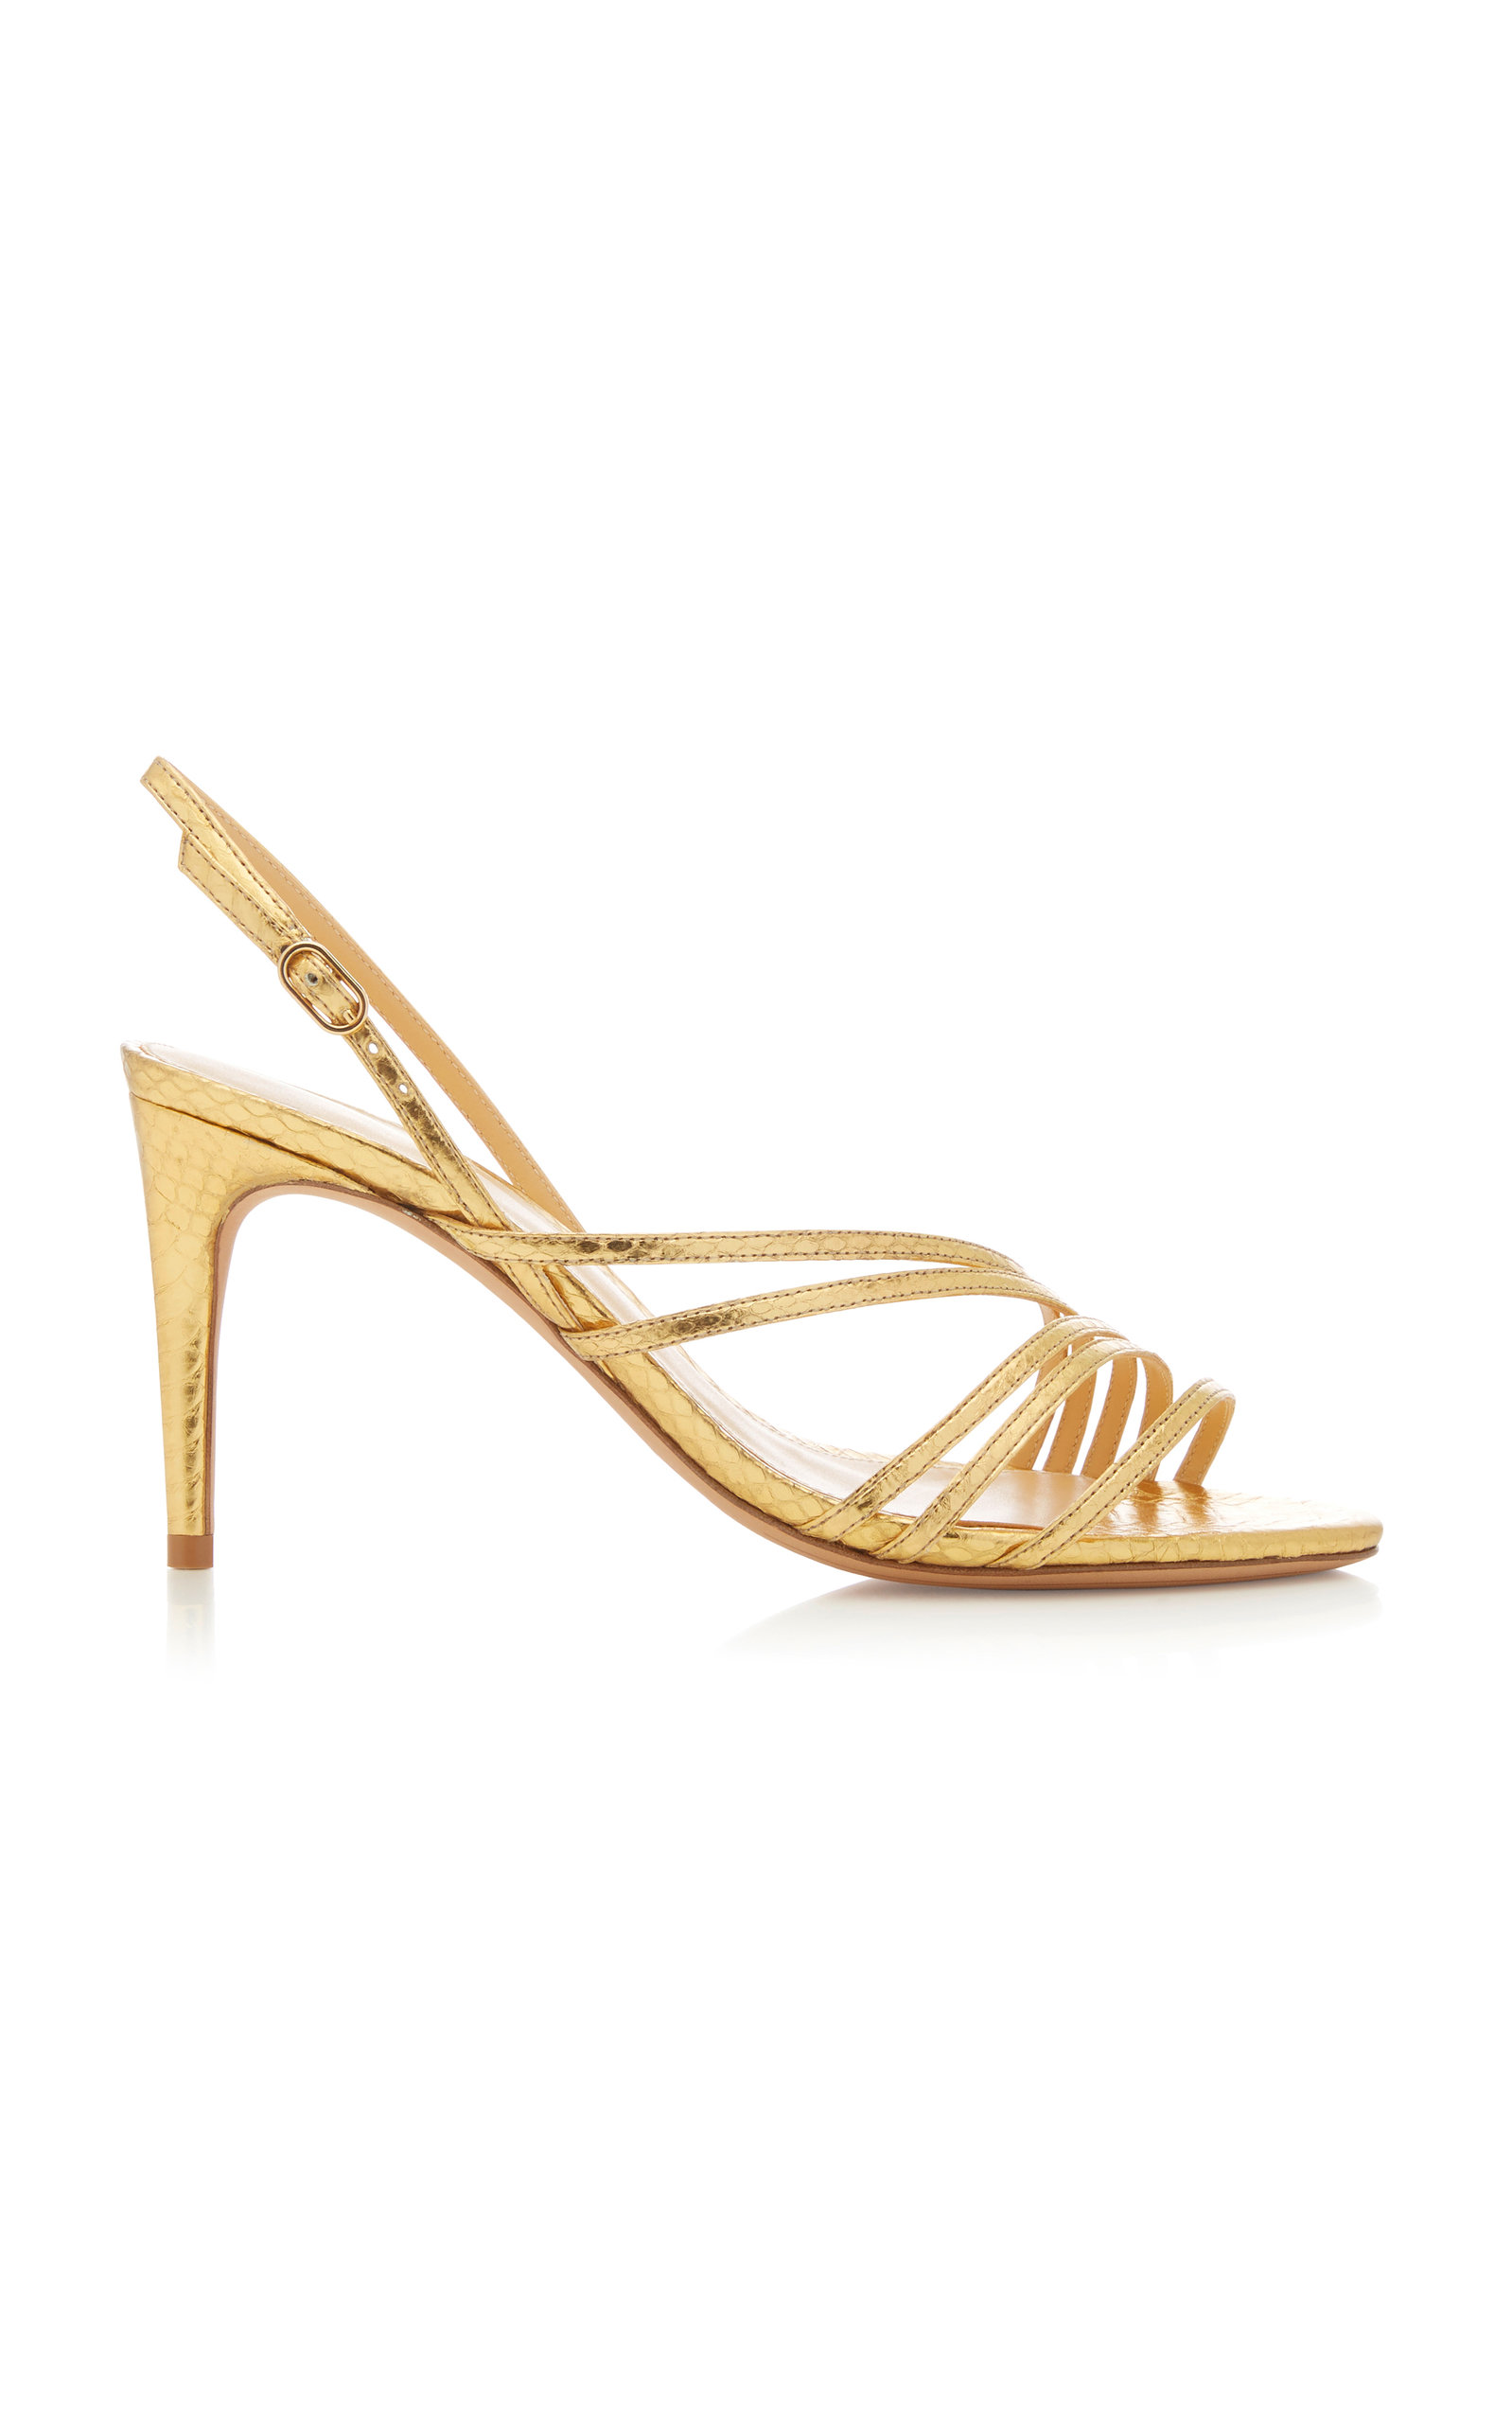 SHANTY EXOTIC WATERSNAKE SANDALS